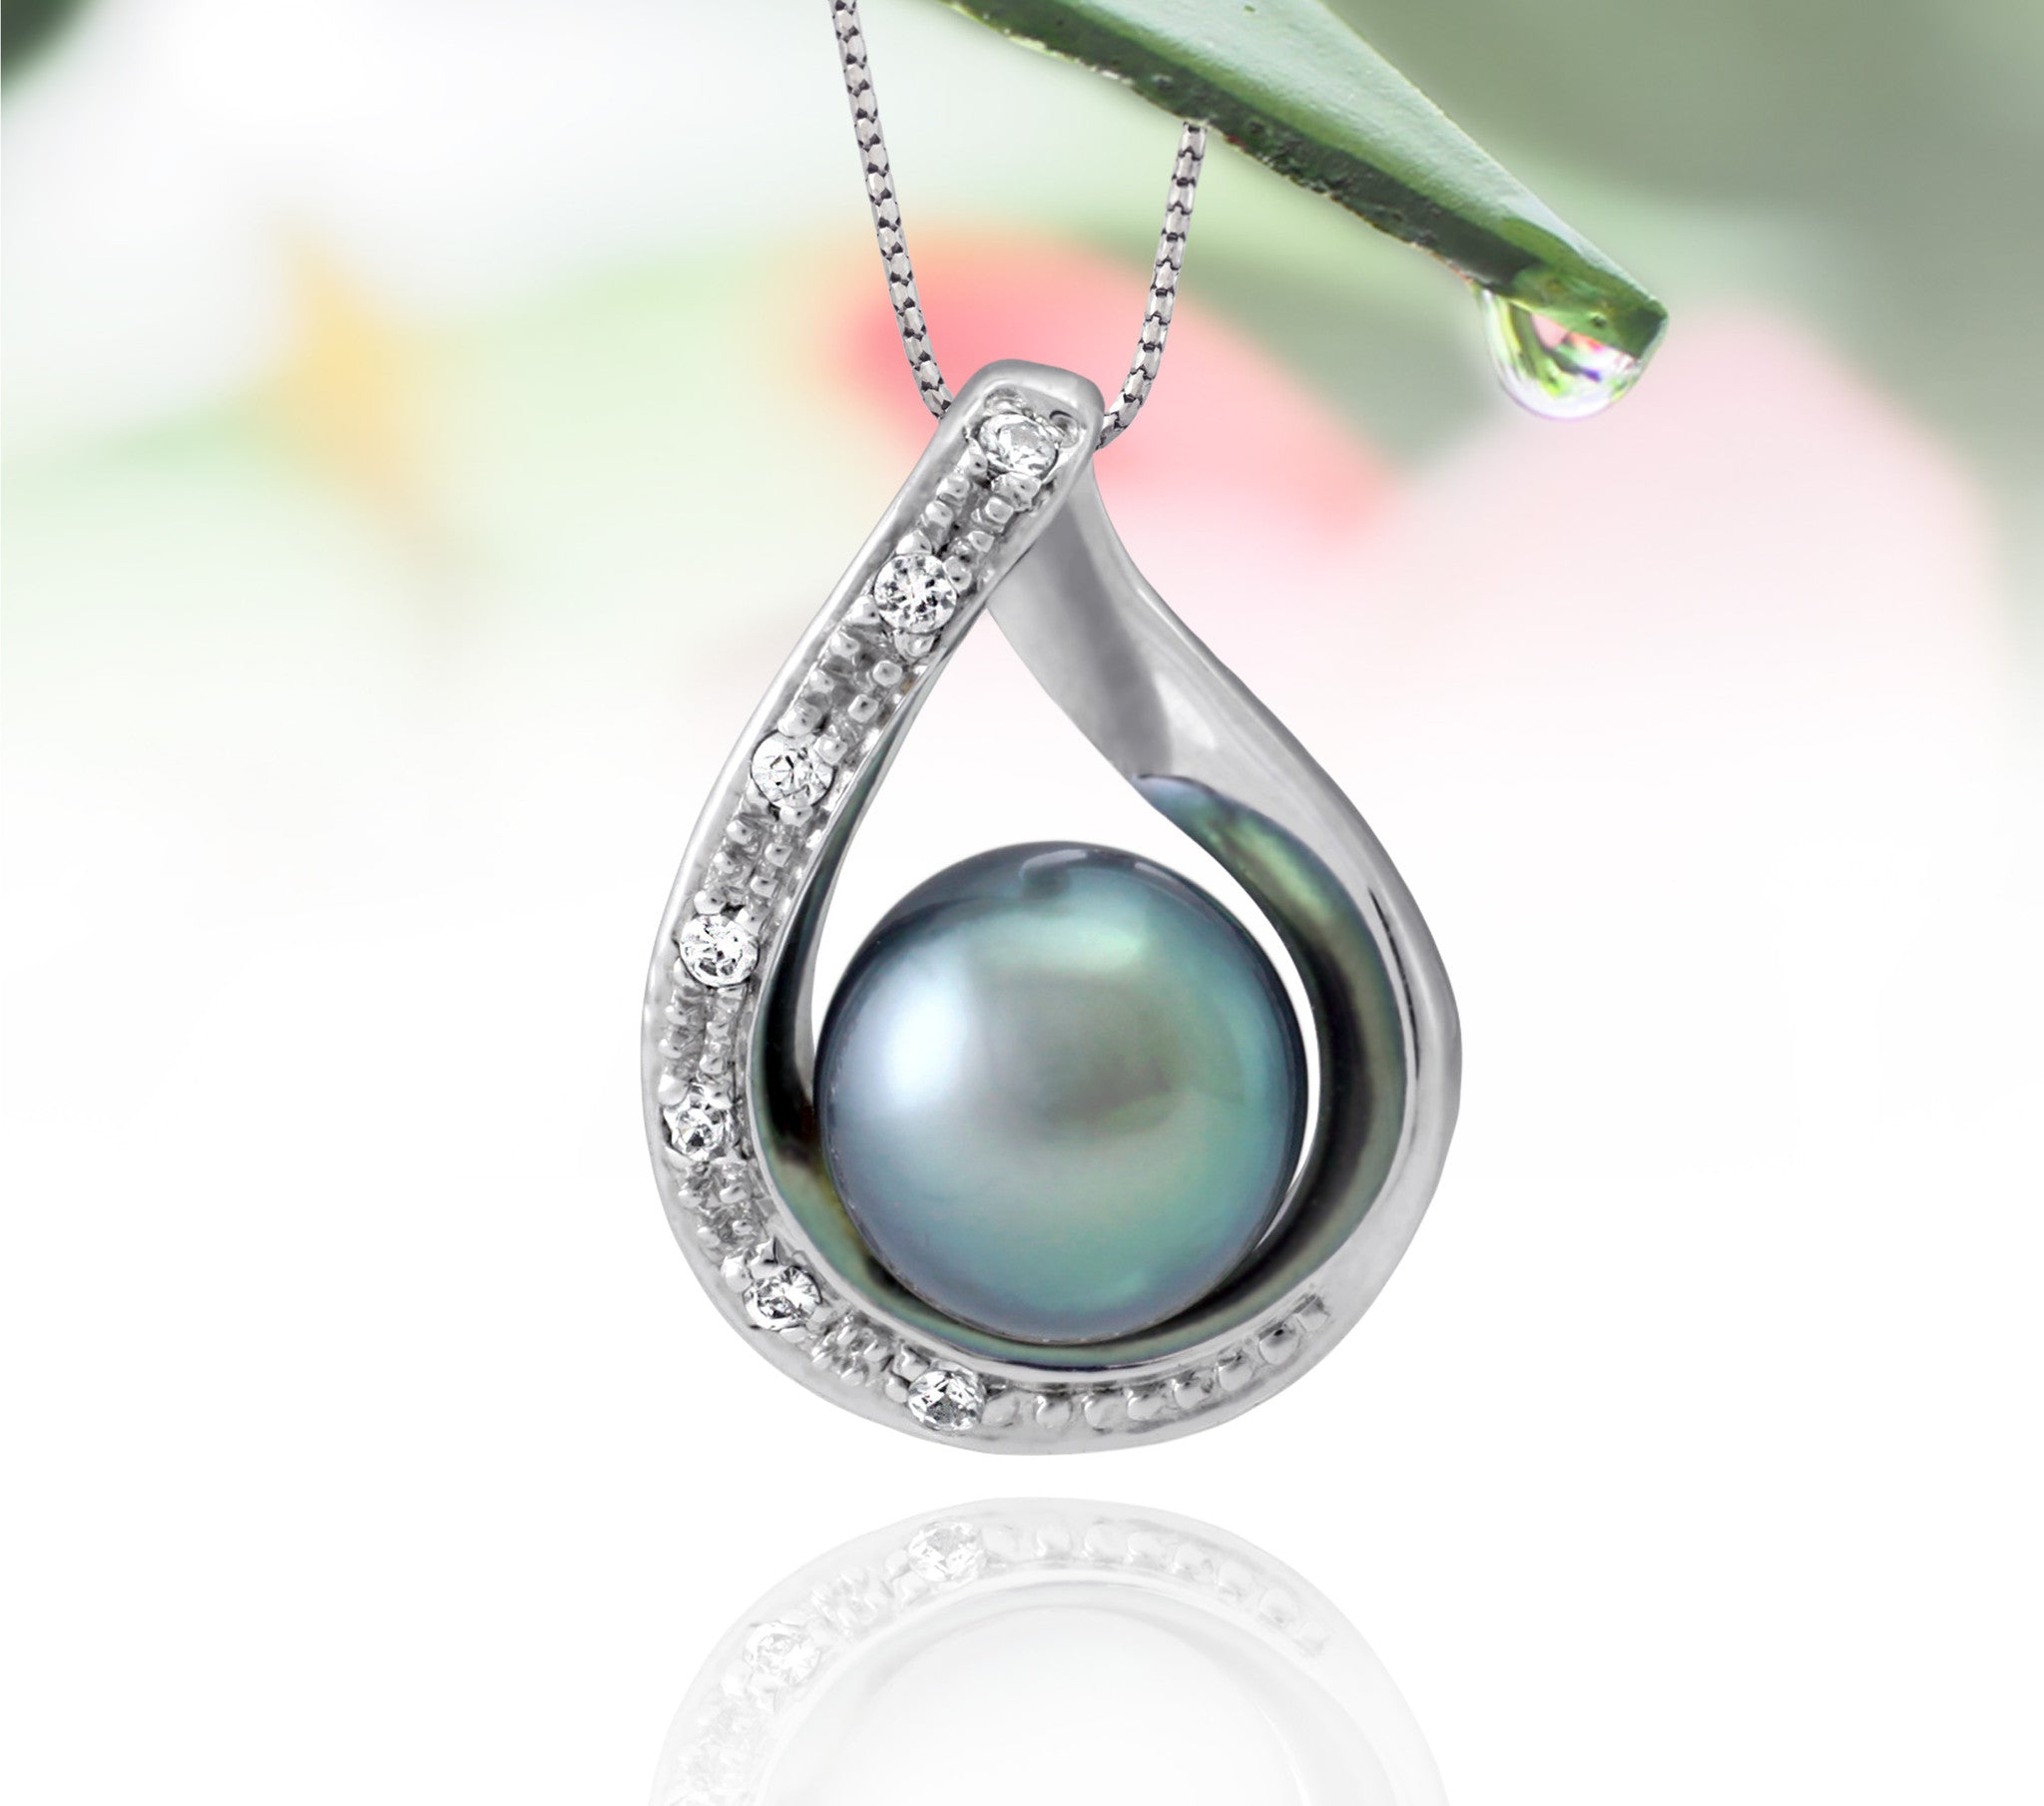 Tahitian pearl pendant in silver - dewdrops collection - PESZPE00511 - blue